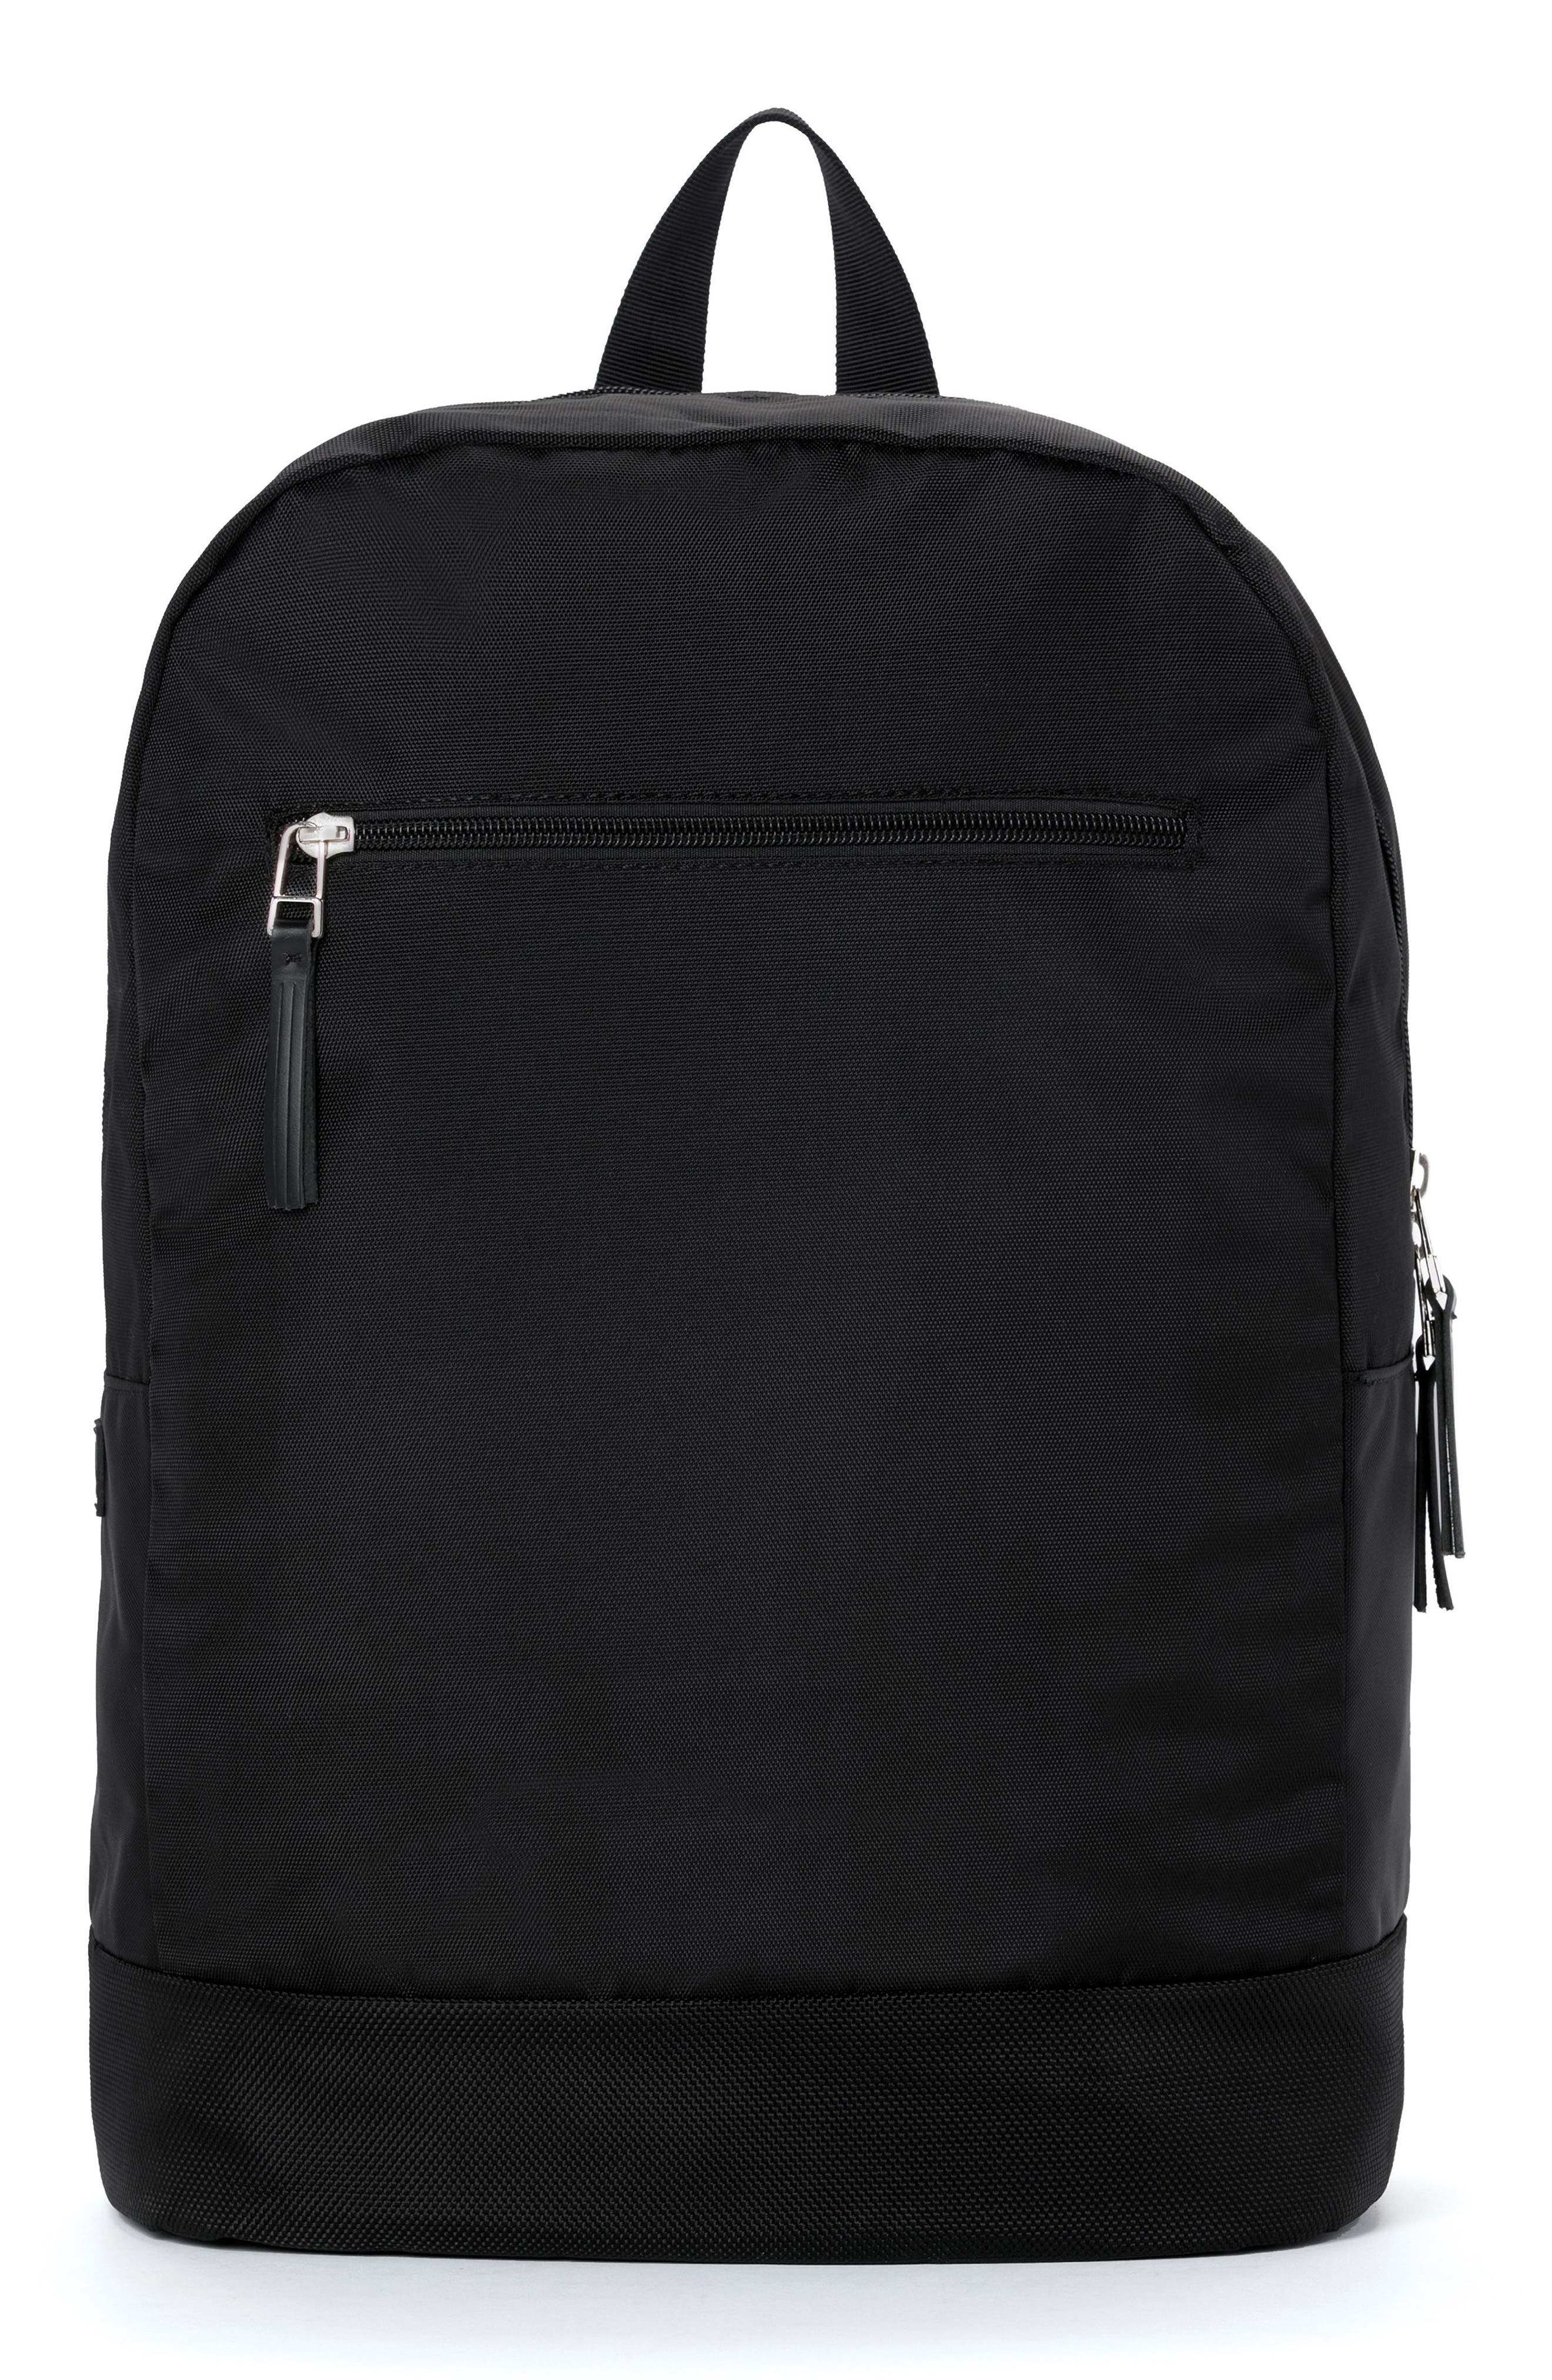 Tomcat Backpack,                         Main,                         color, 001